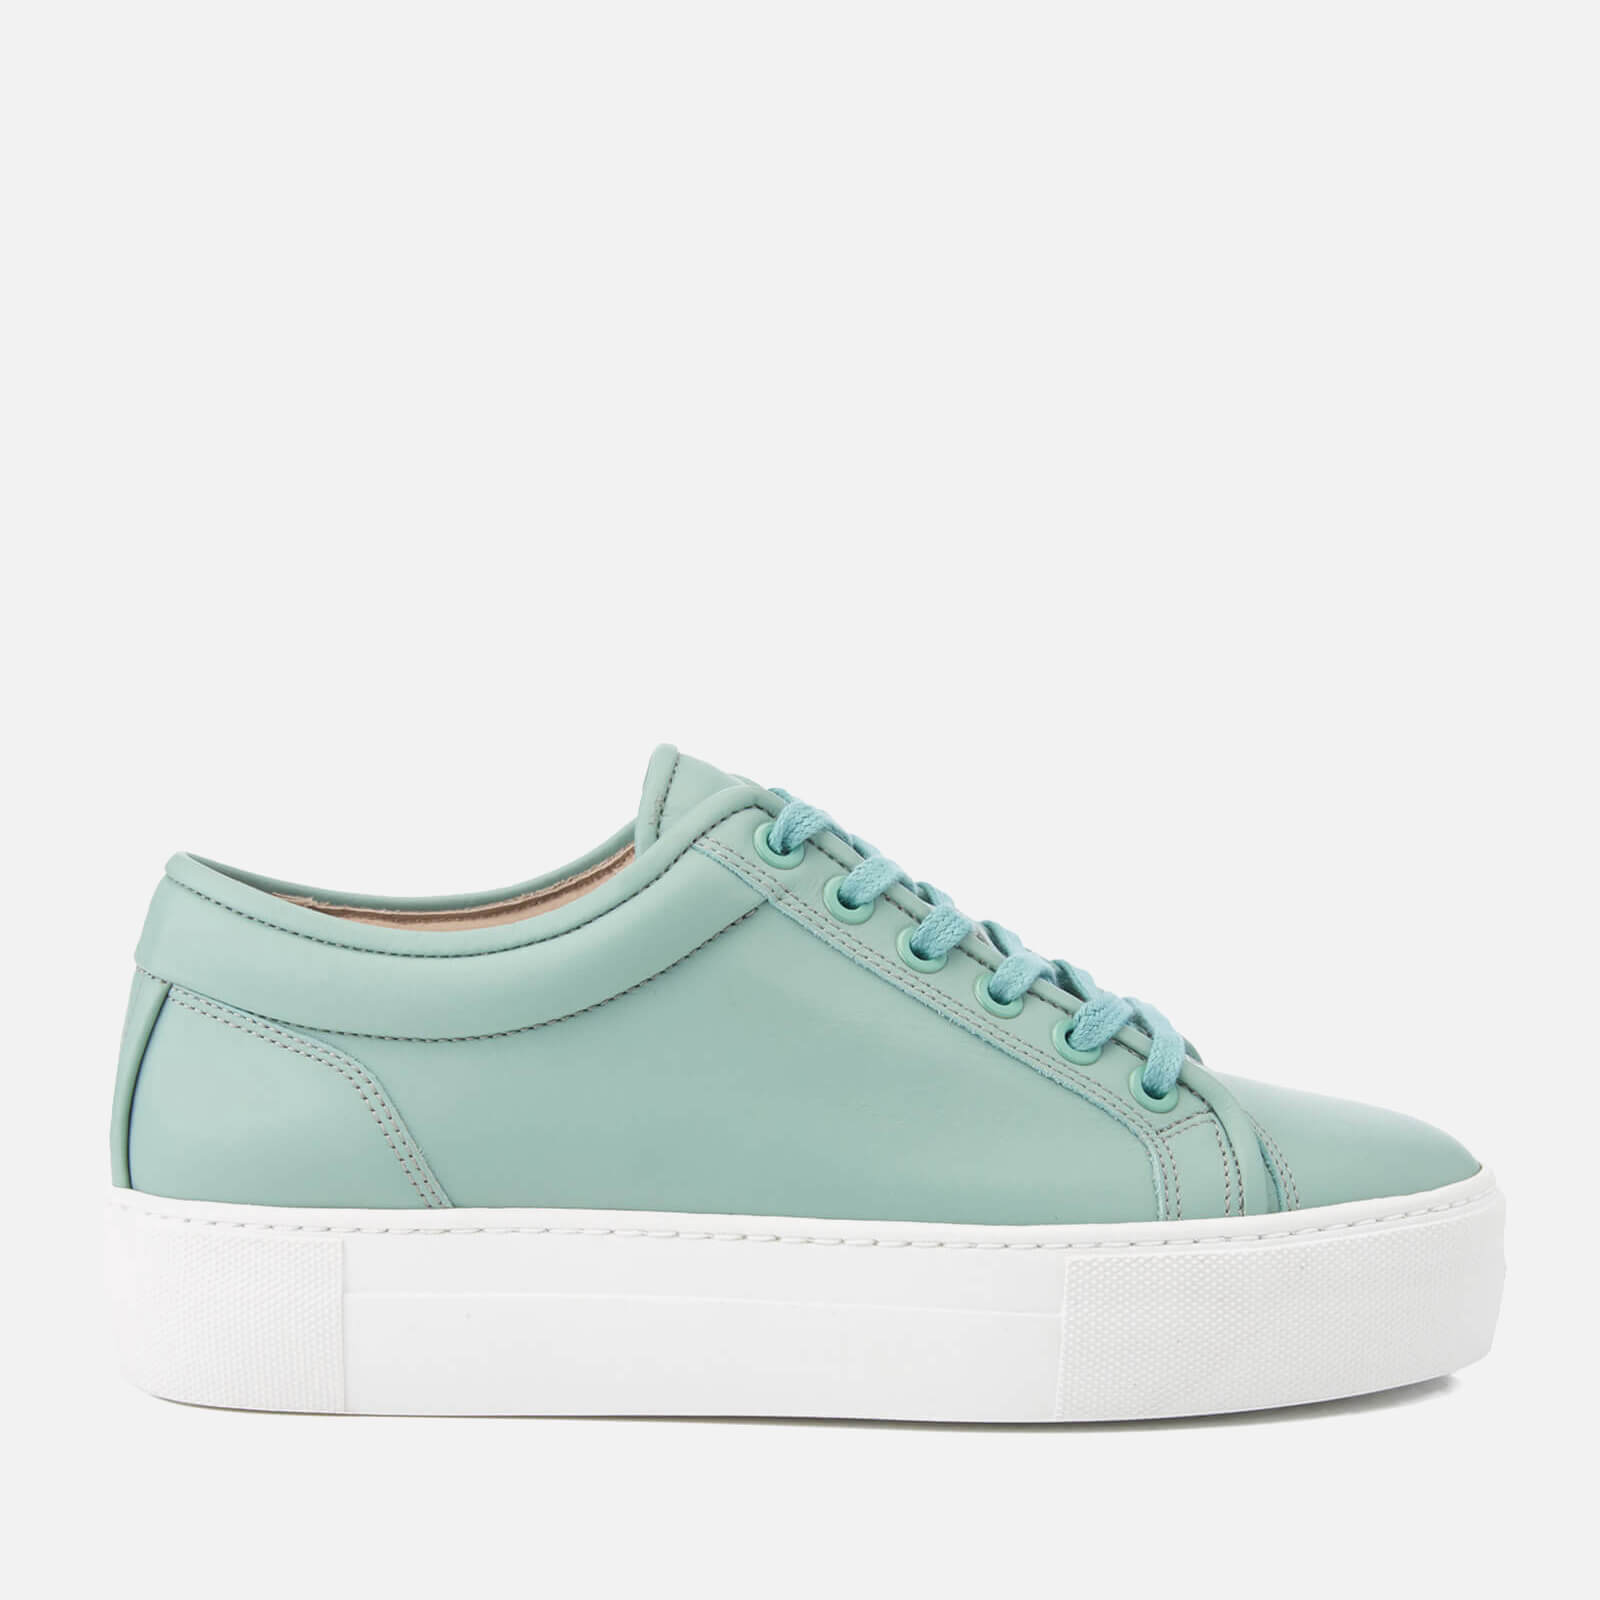 Women's Low Top 1 Rubberized Leather Trainers - Mint Stacked